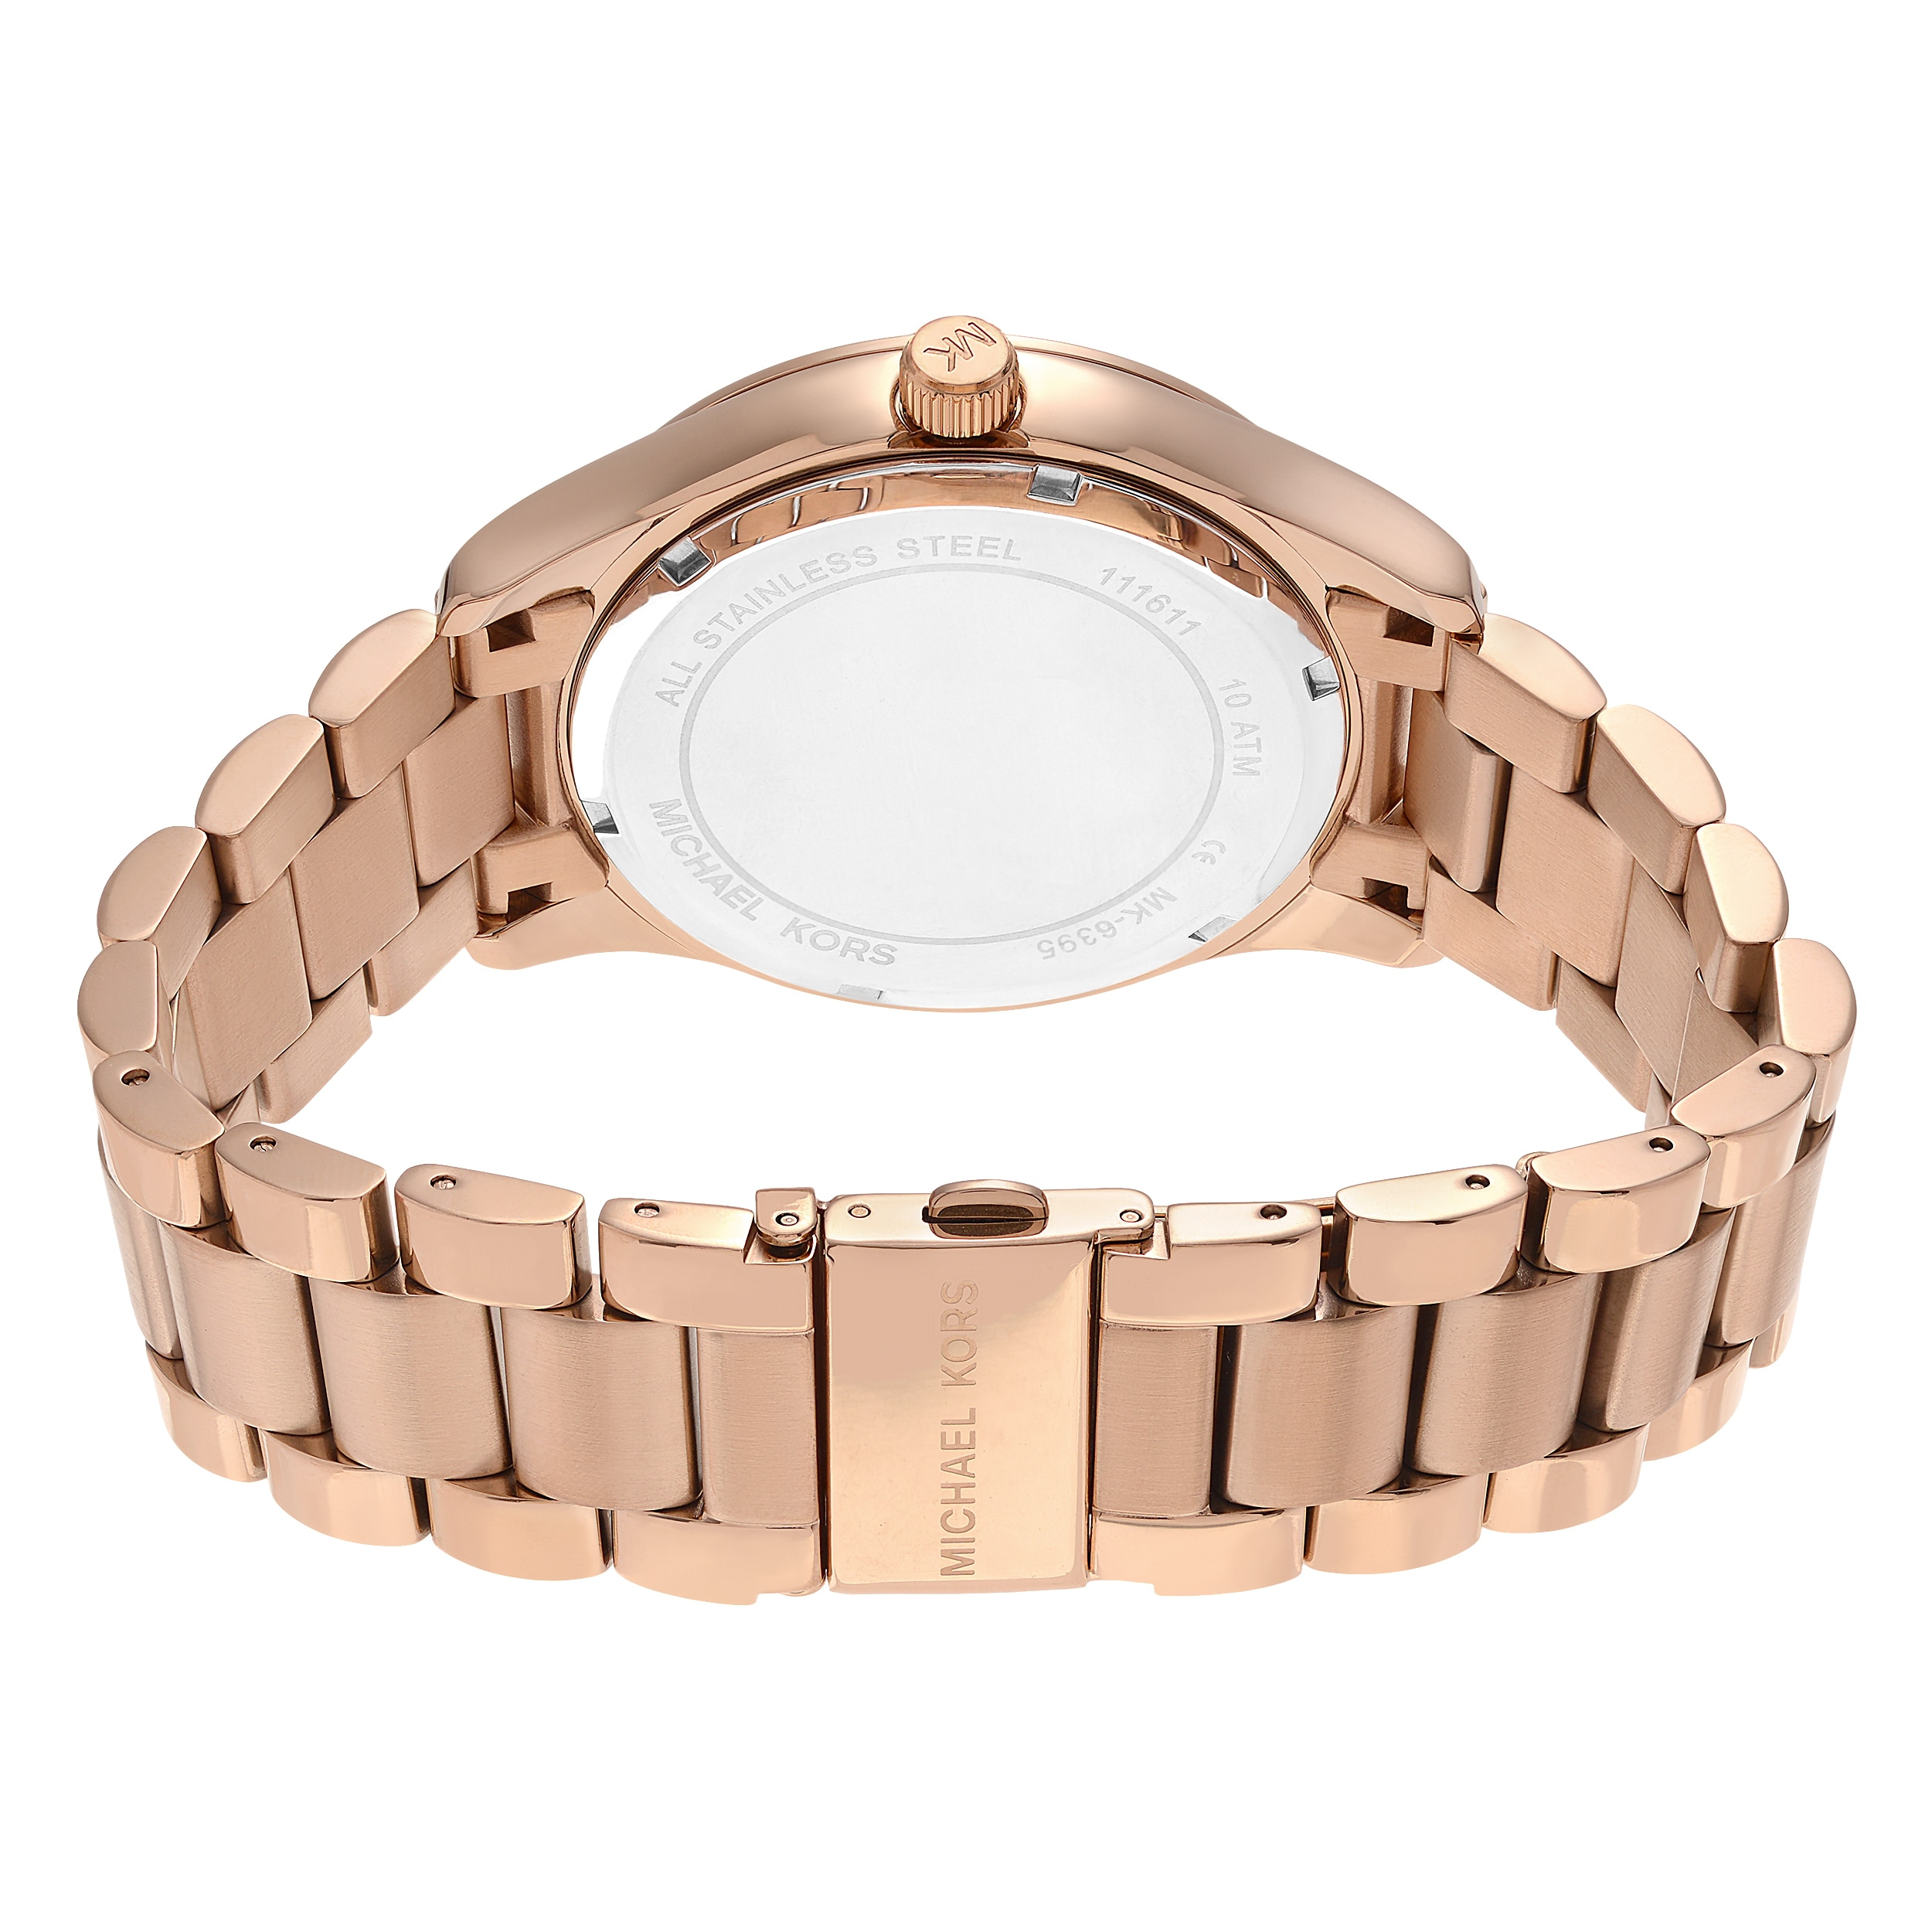 Michael kors womens mk6395 layton rose goldtone stainless steel michael kors womens mk6395 layton rose goldtone stainless steel world map dial link bracelet watch free shipping today overstock 21322386 gumiabroncs Image collections